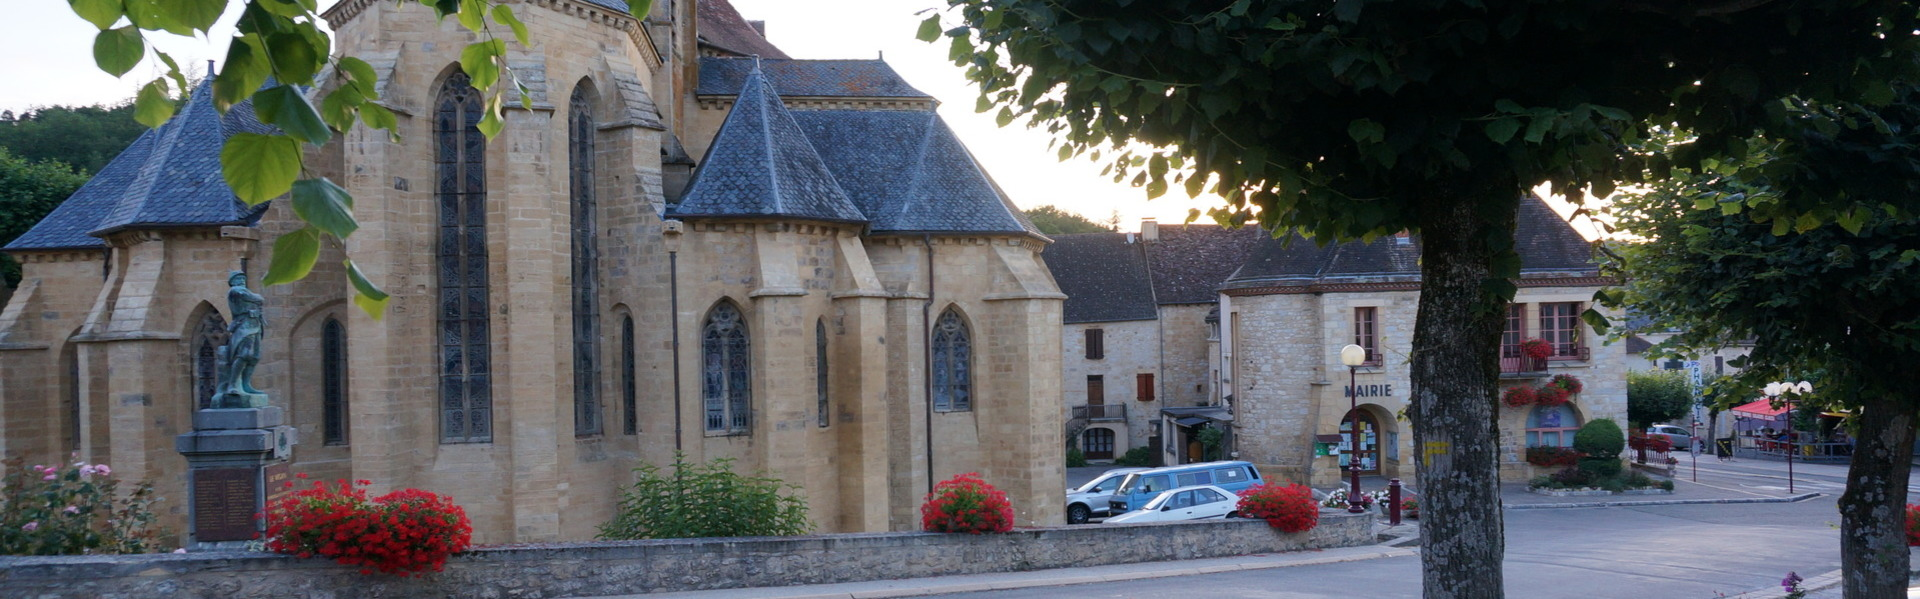 Mairie Commune Municipal Le Vigan Lot Occitanie